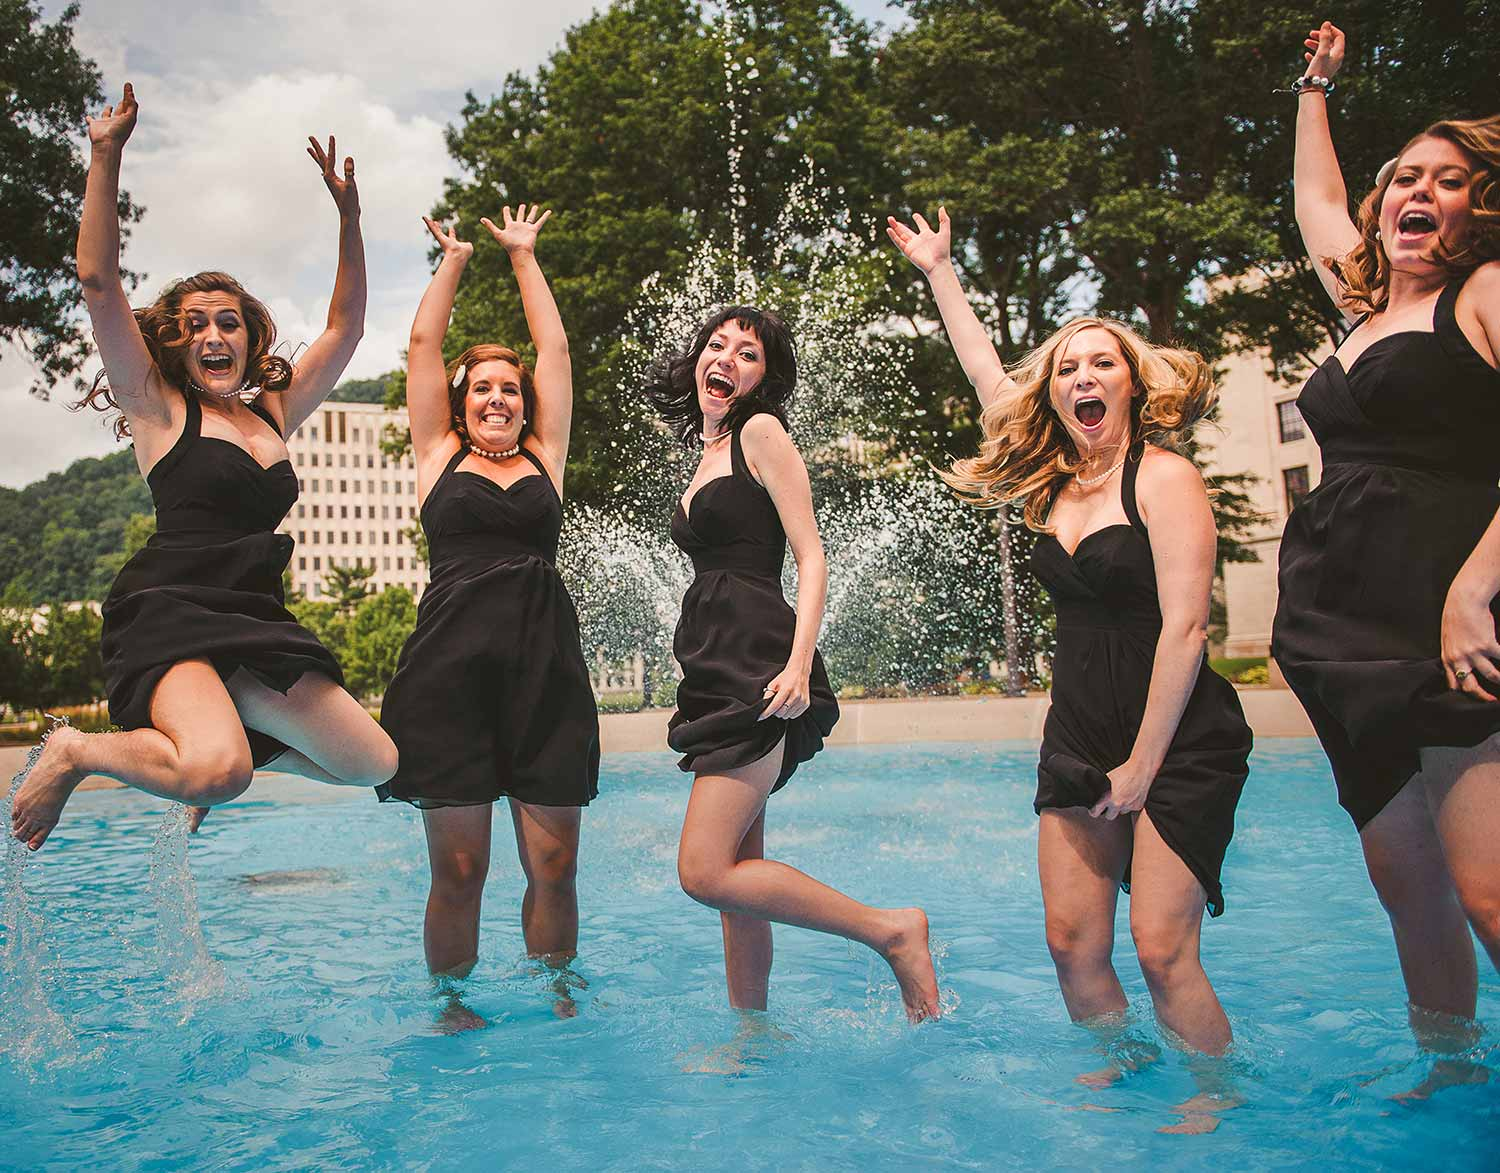 charleston-west-virginia-statehouse-funny-bridal-party-in-fountain.jpg